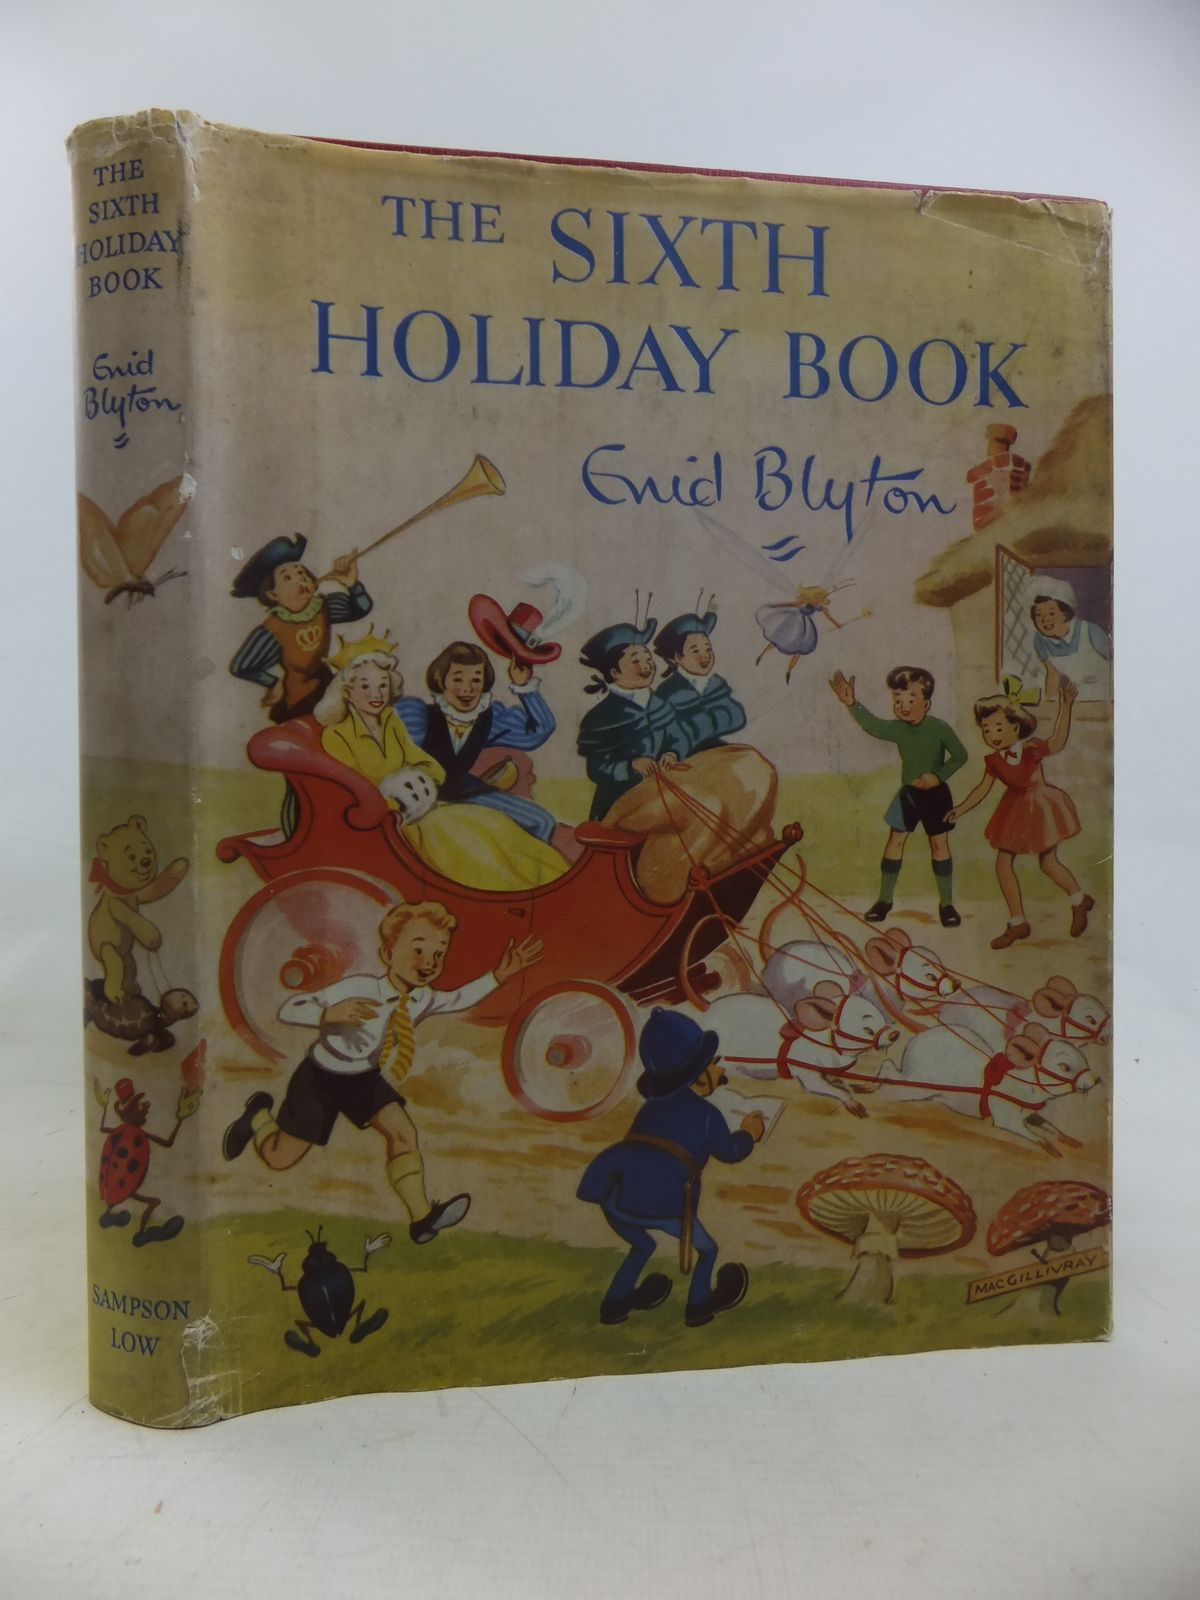 Photo of THE SIXTH HOLIDAY BOOK written by Blyton, Enid illustrated by Steed, Cicely MacGillivray, Robert McGavin, Hilda Sheppard, Raymond et al.,  published by Sampson Low, Marston & Co. Ltd. (STOCK CODE: 2116788)  for sale by Stella & Rose's Books